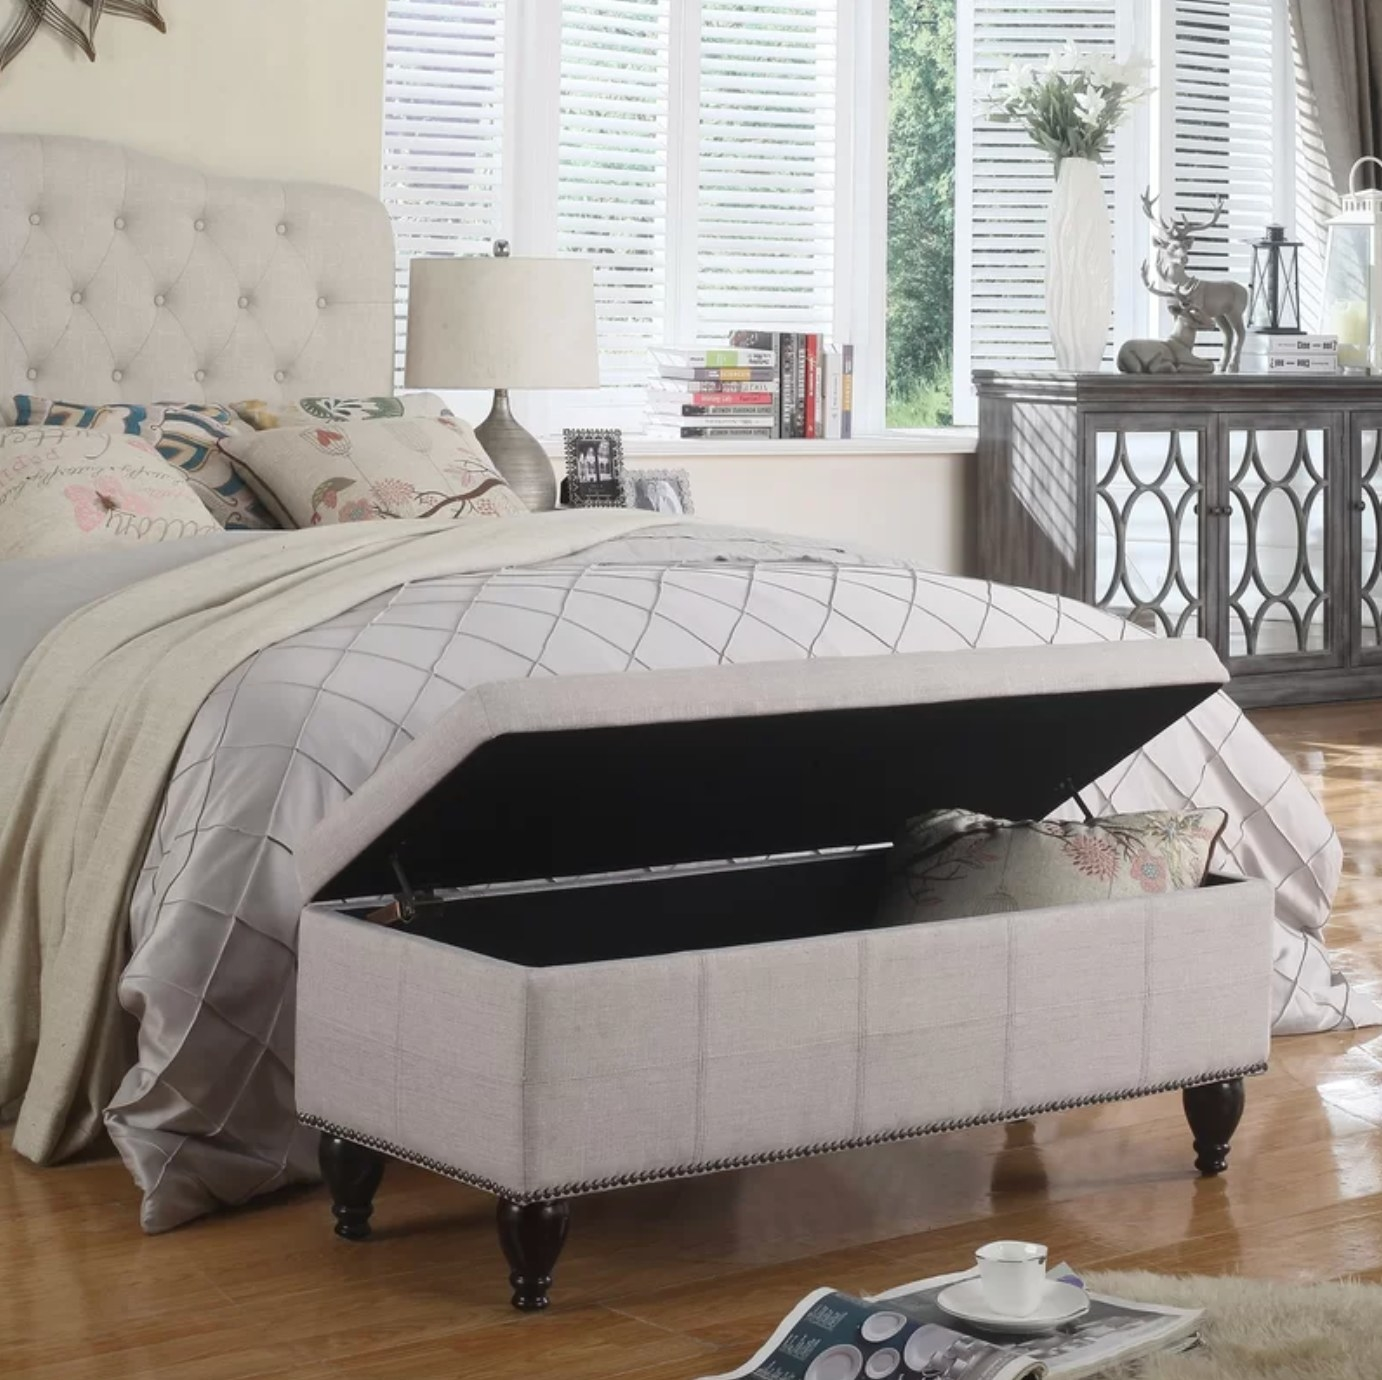 The upholstered storage bench in beige at the foot of a bed